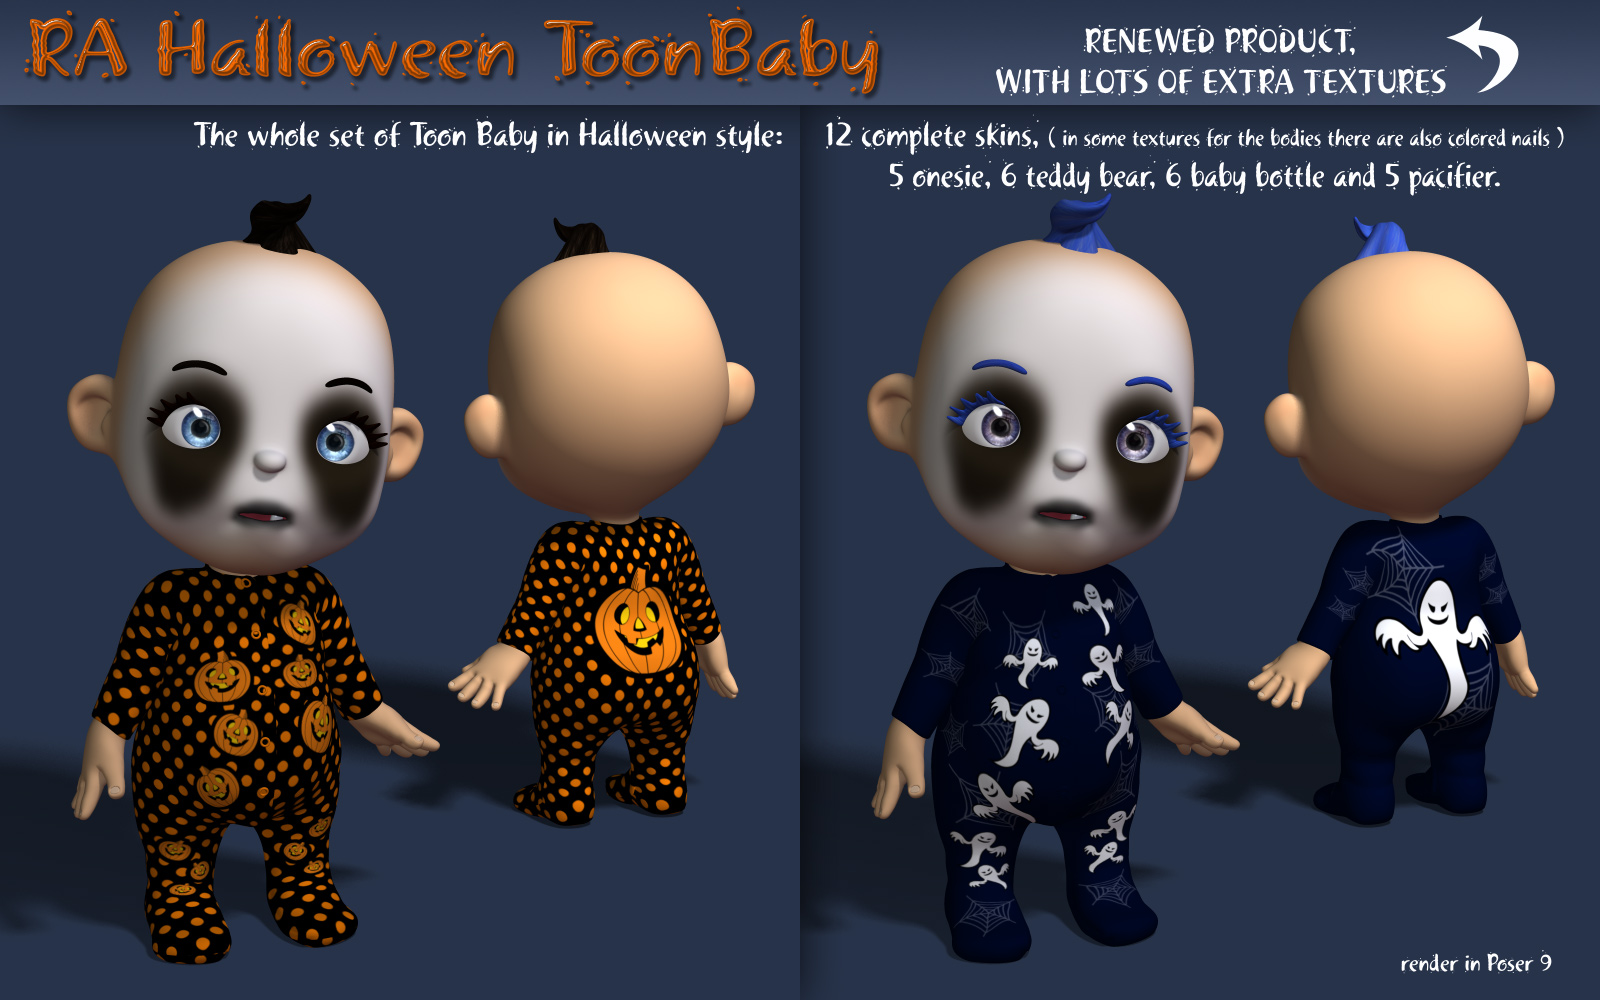 RA Halloween ToonBaby by RAGraphicDesign